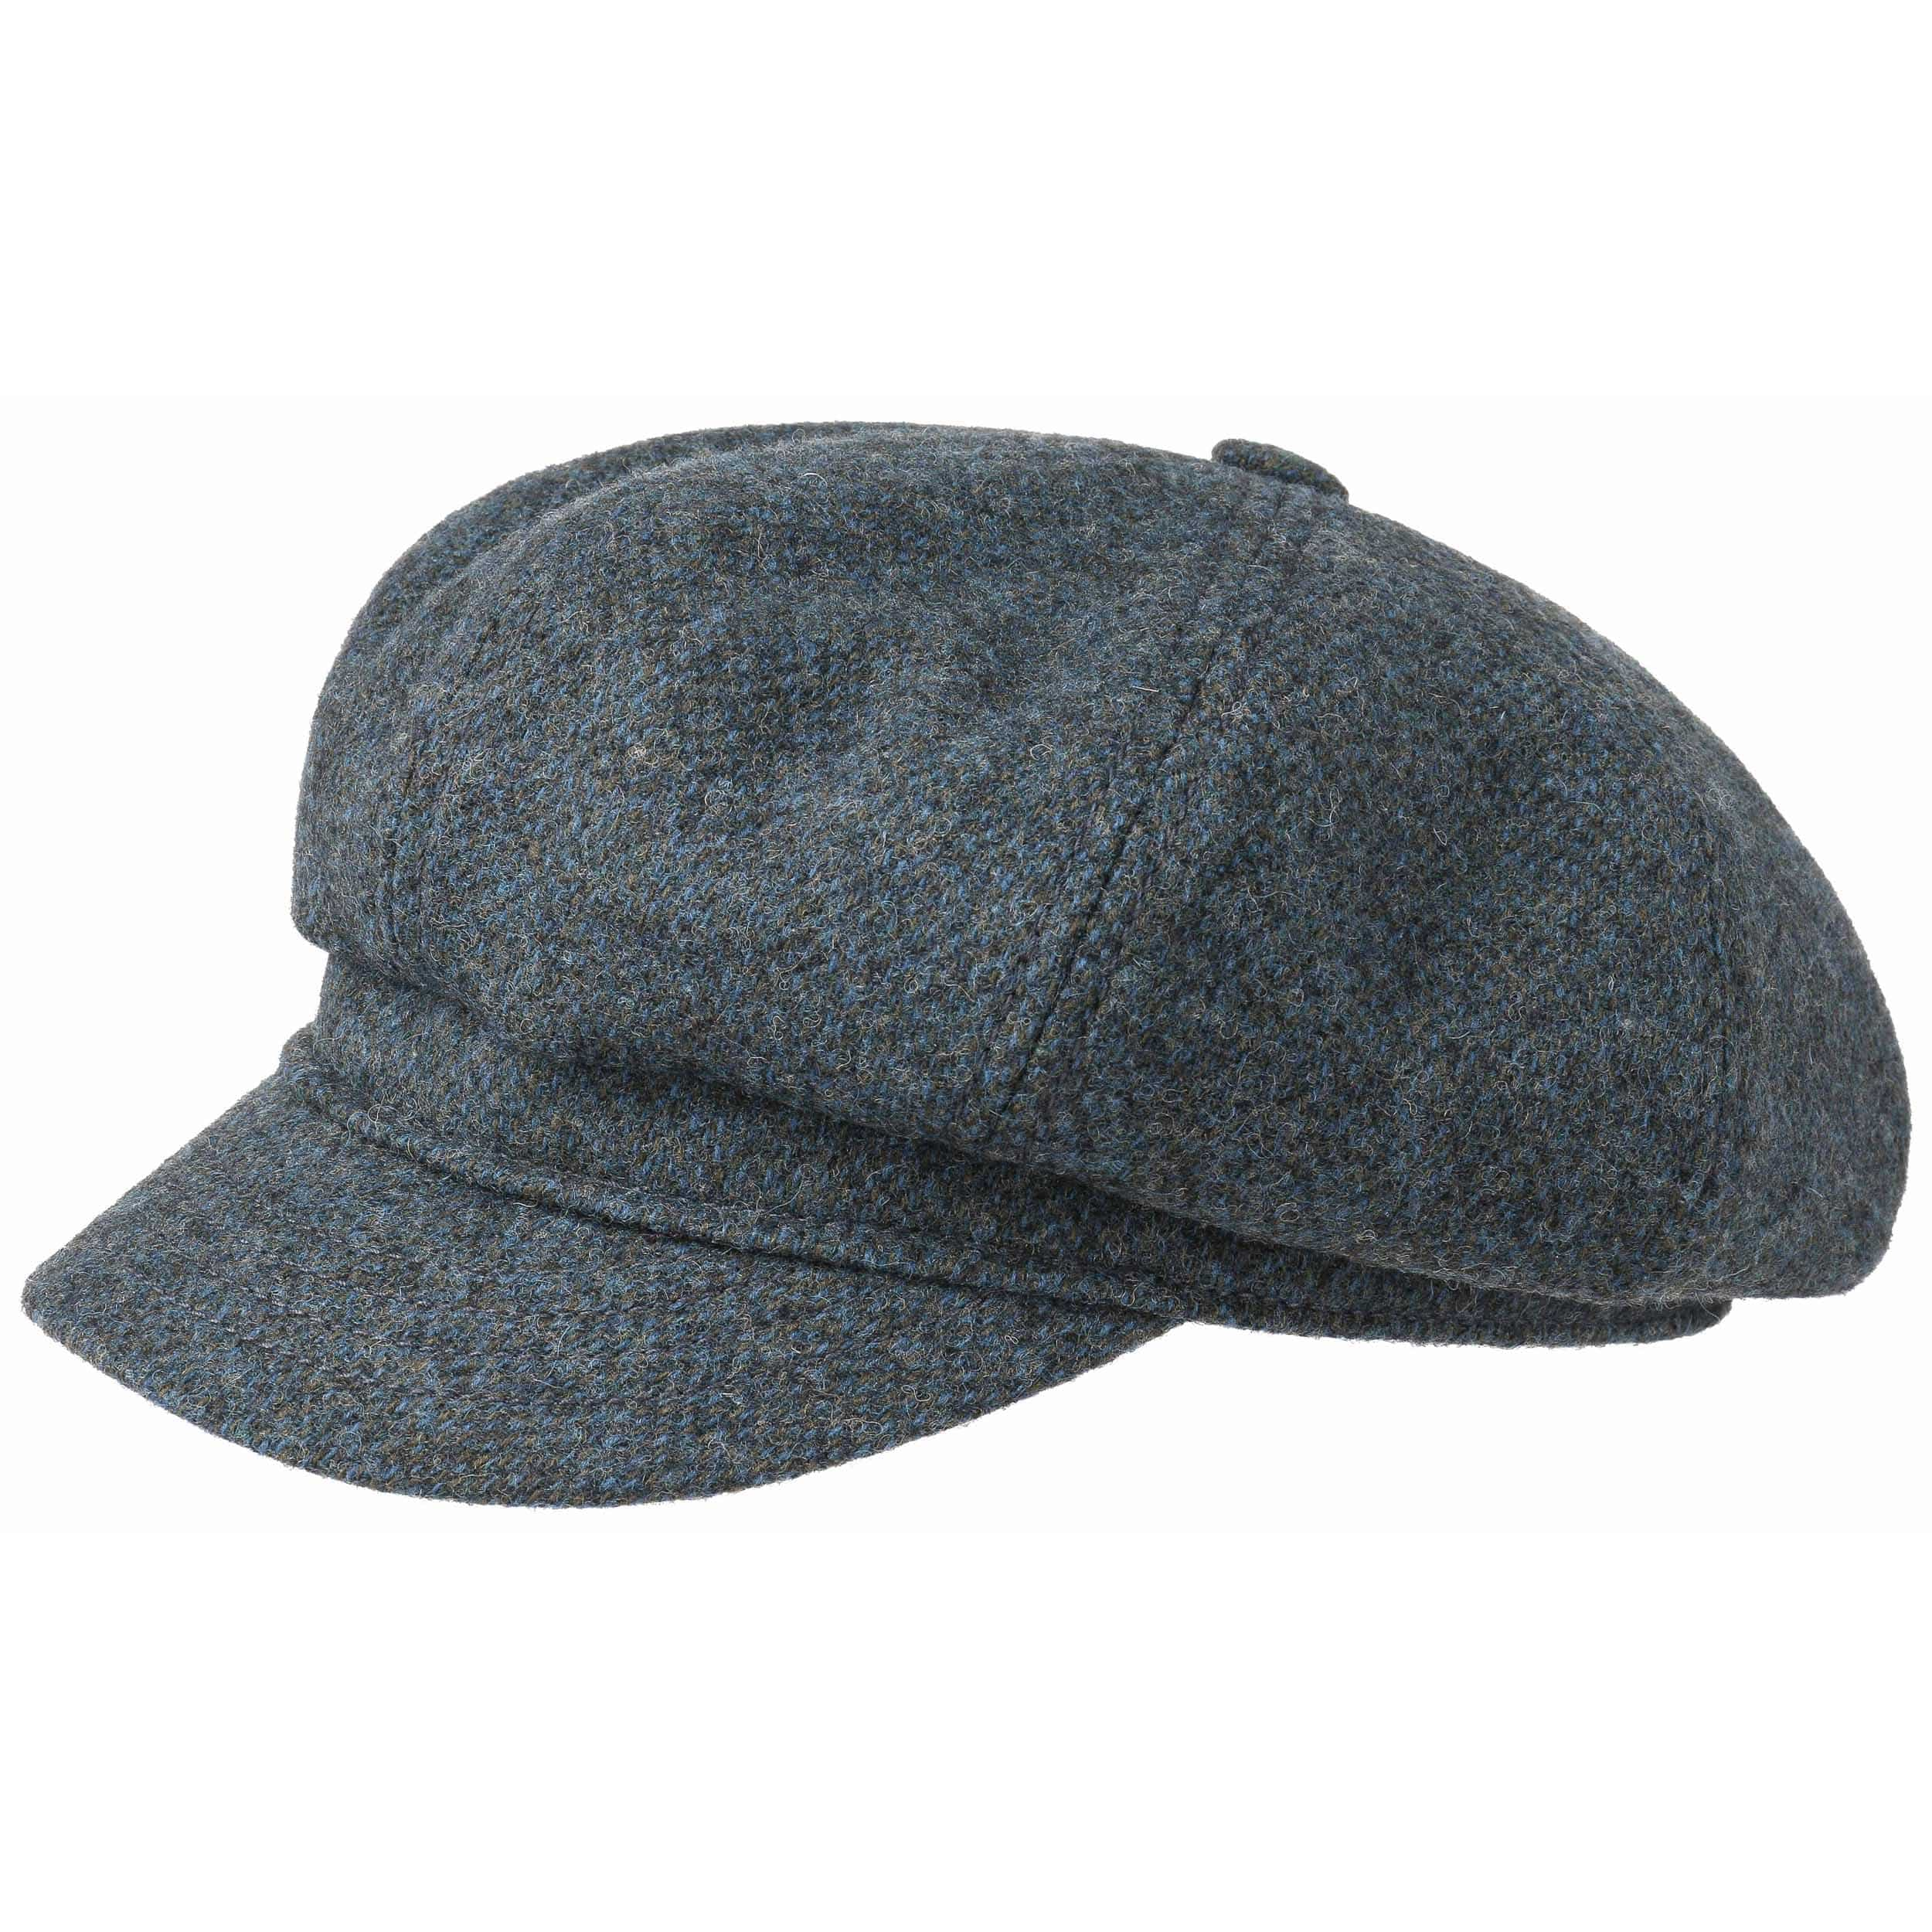 ... Berretto 8-Panel Woolrich by Stetson - blu 1 ... 725378fa9413